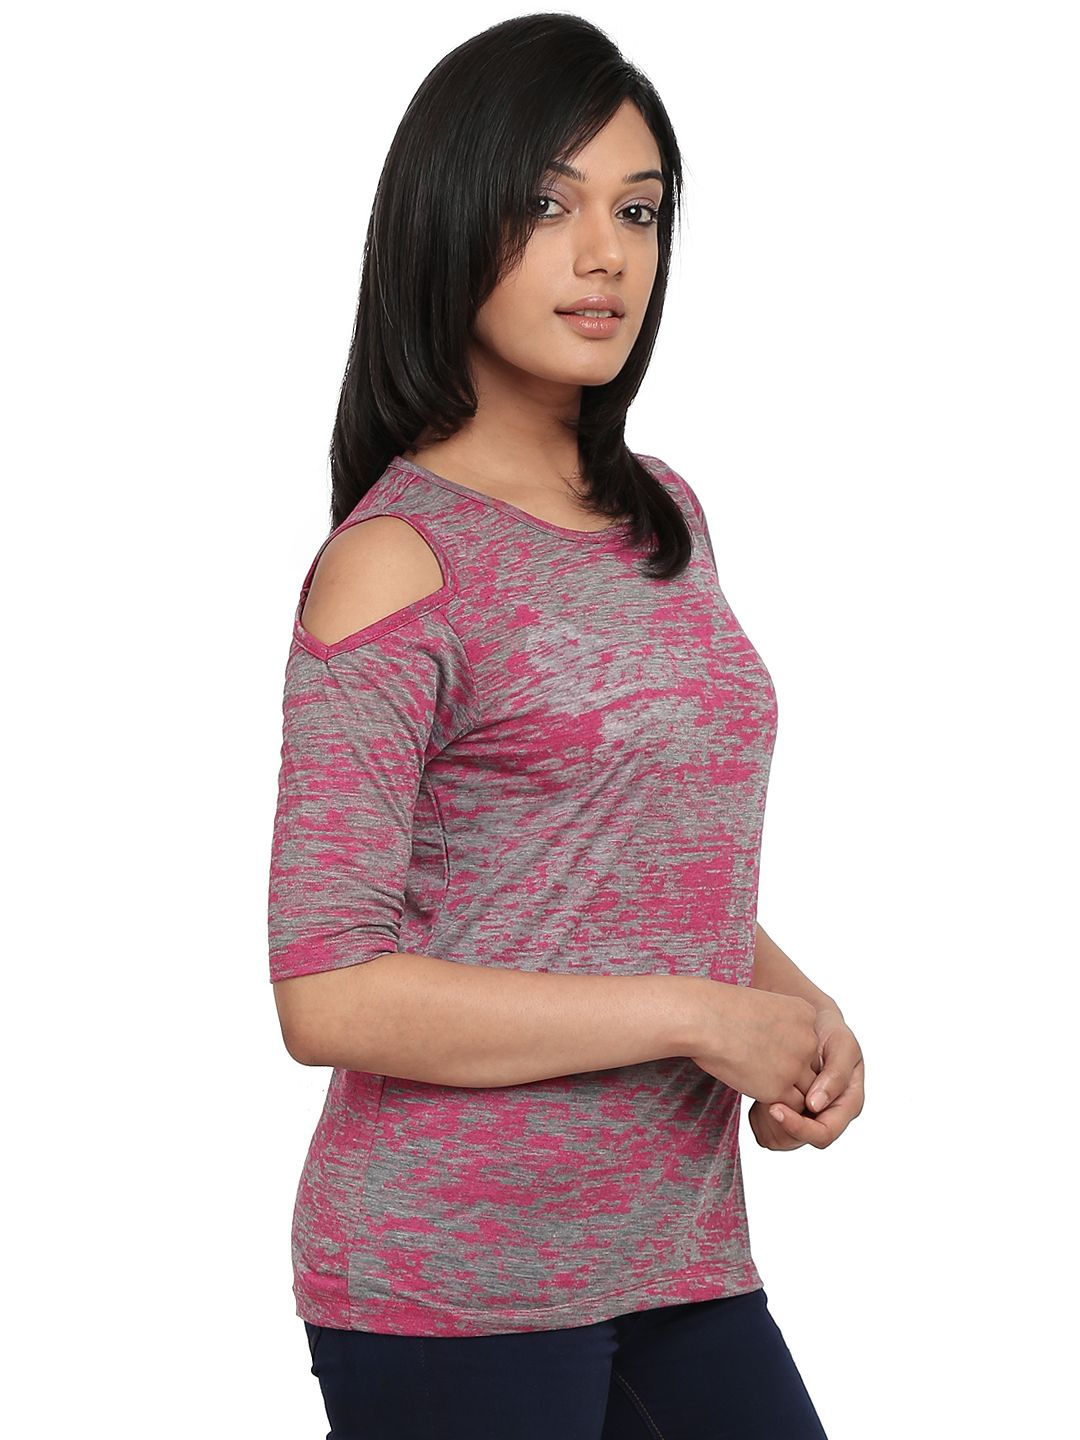 ee3accf5764ac Buy Cold Shoulder Tops Online in India at Best Prices - Kraftly